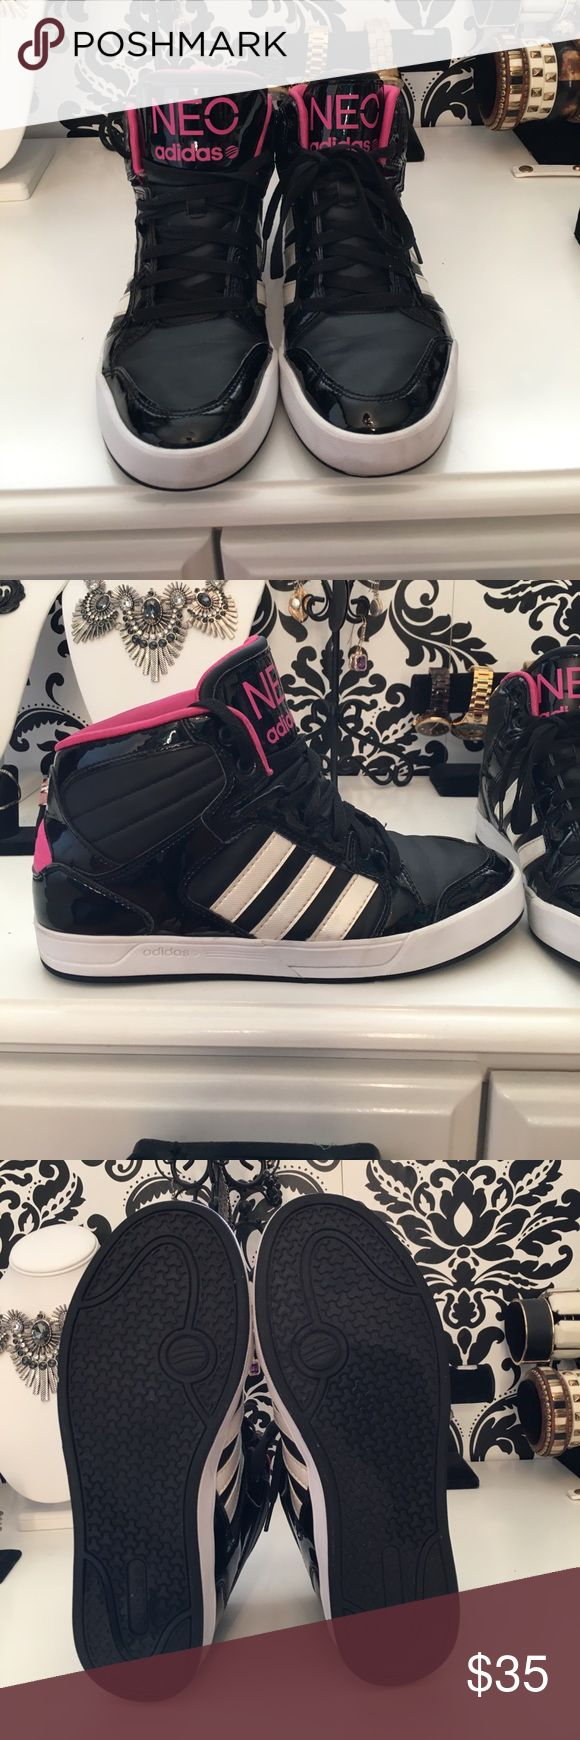 Adidas Neo High Tops - Size 10 hot pink and black Gently used Adidas Hot Pink and Black High Tops! Adidas Shoes Sneakers